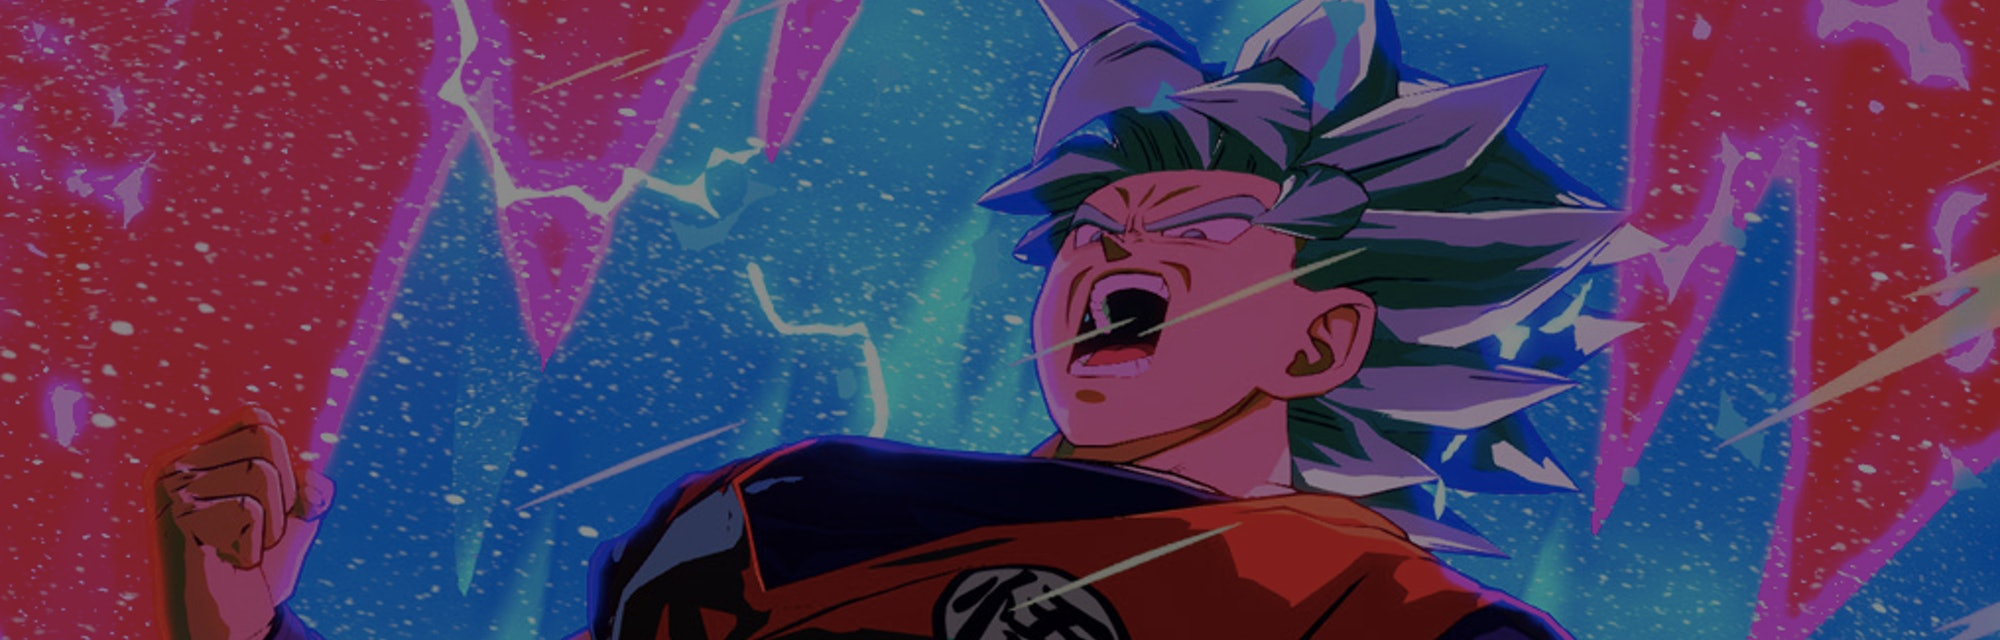 A close up of Goku in the game Dragon Ball FighterZ is shown.